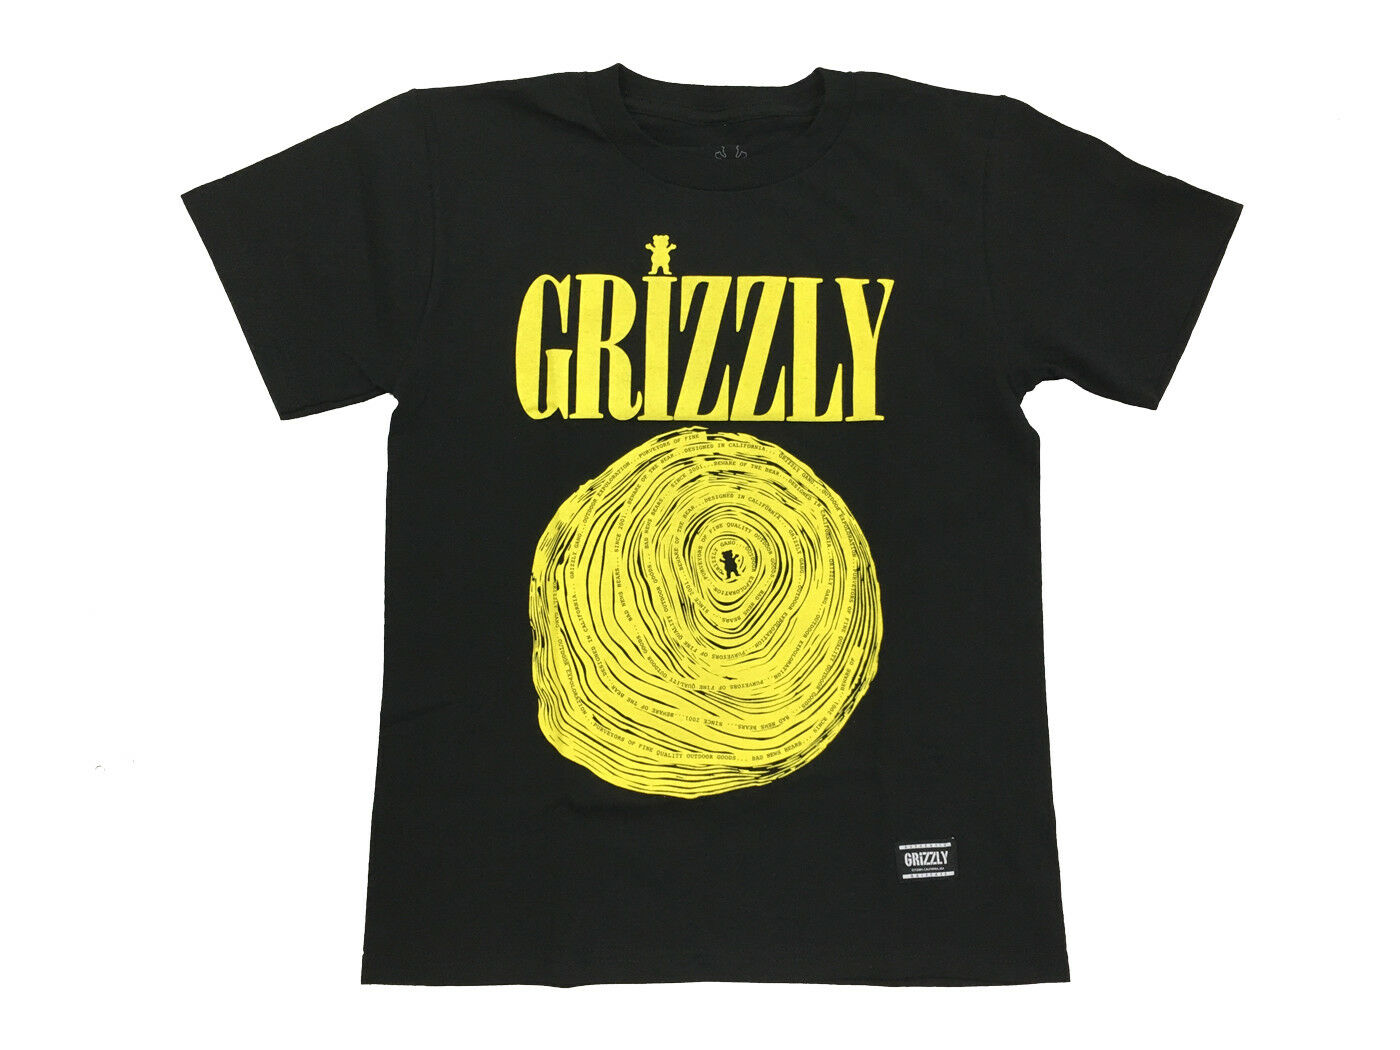 Grizzly Griptape Nevermind Youth T-Shirt Bear Black Tee Youn